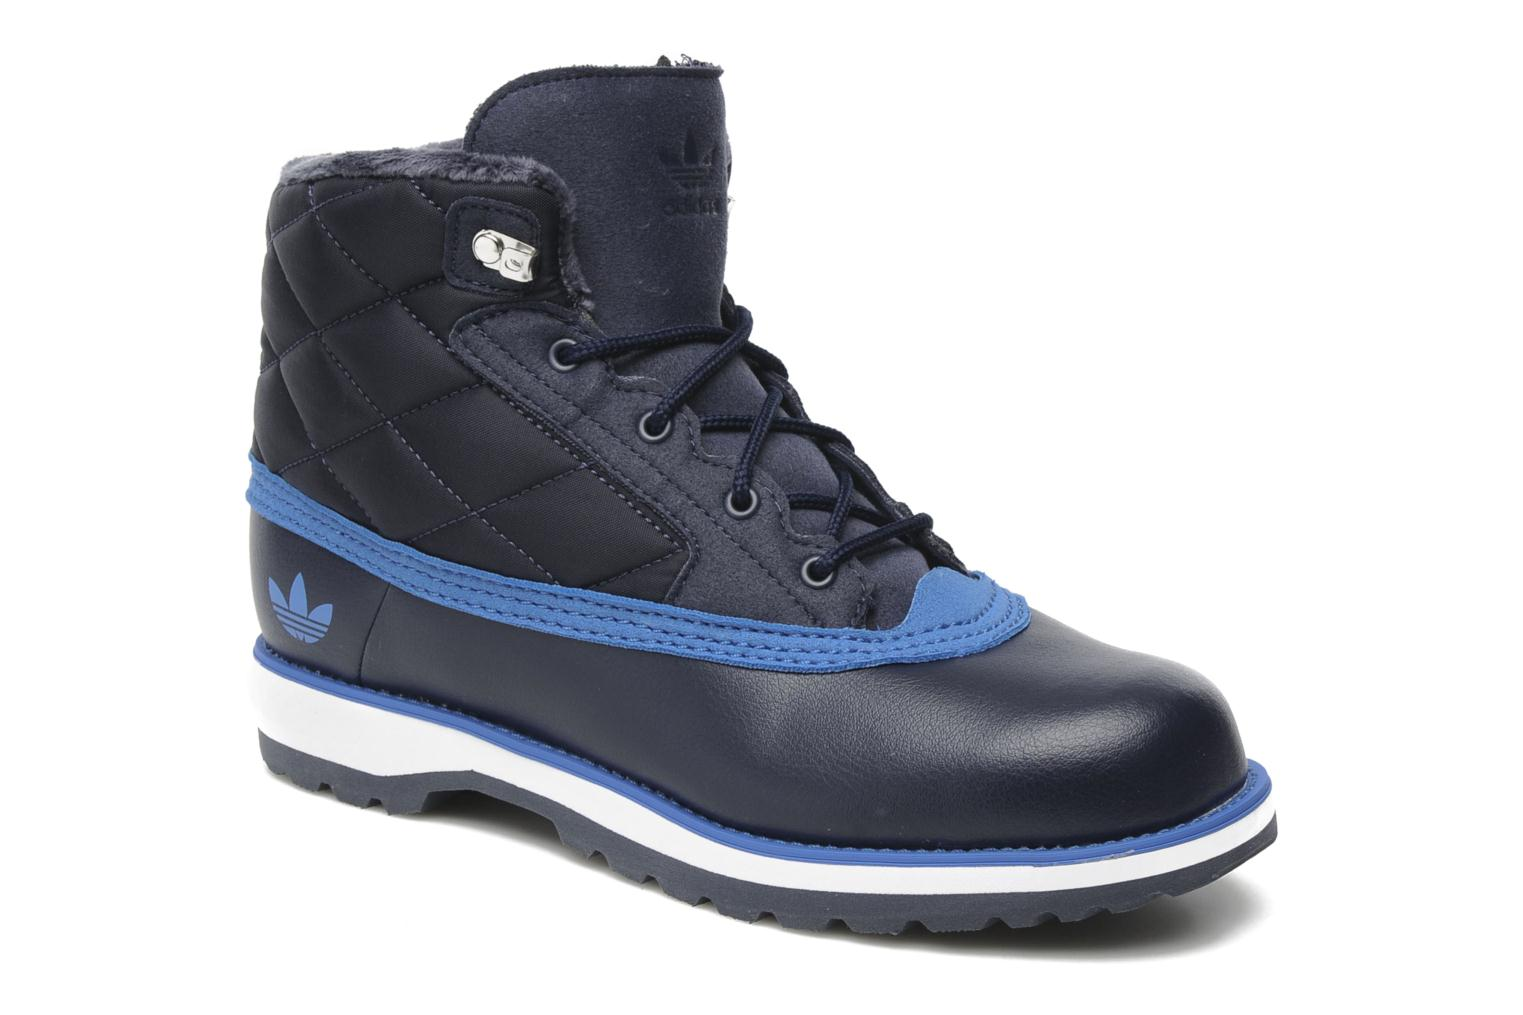 Adidas Originals Adi Navvy Quilt K (Blue) - Ankle boots chez ... : adidas quilted boots - Adamdwight.com